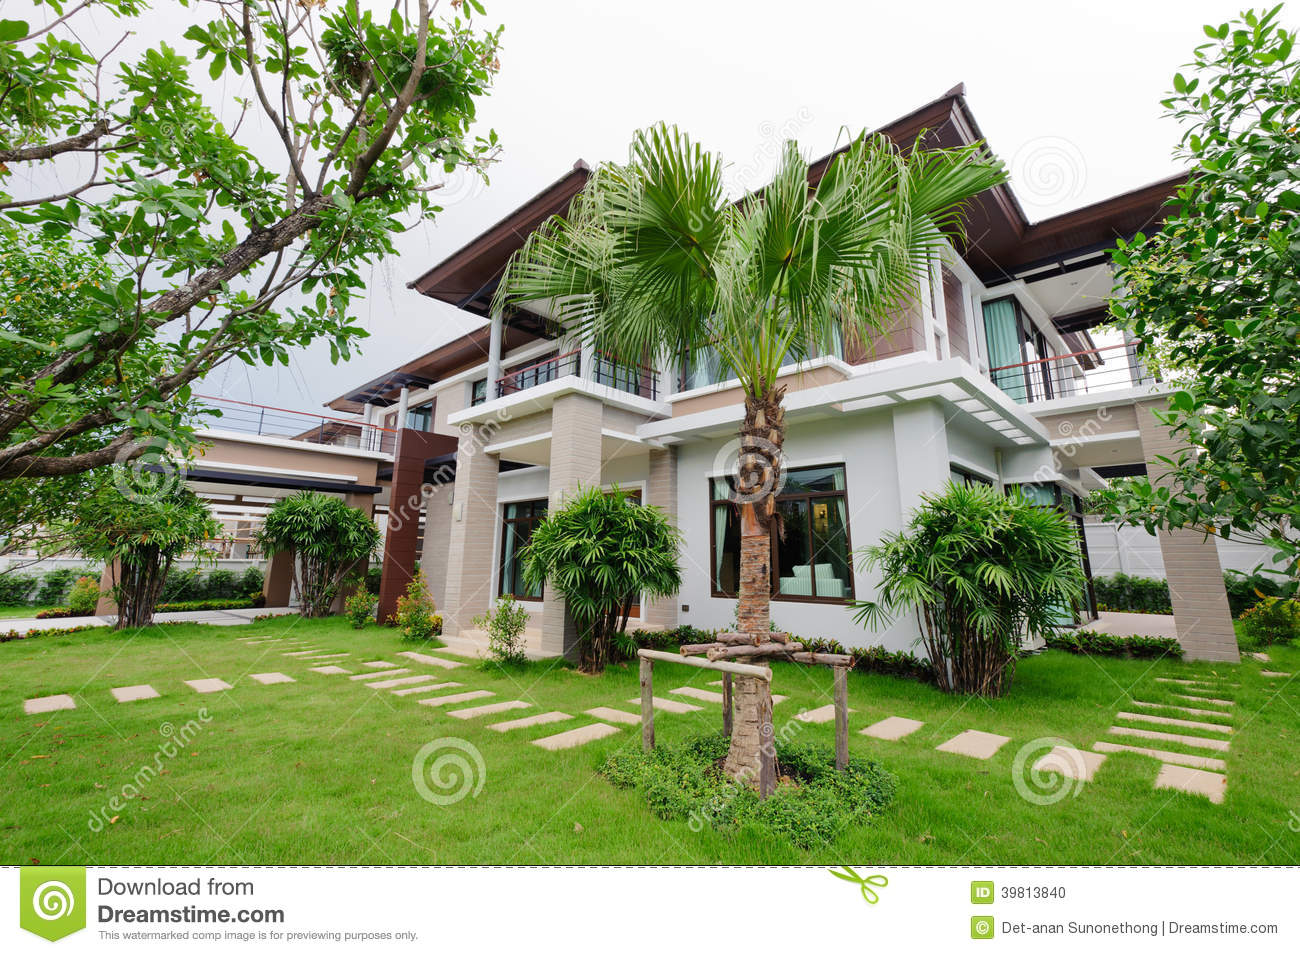 Modern House nd Garden Stock Photo - Image: 39813840 - ^